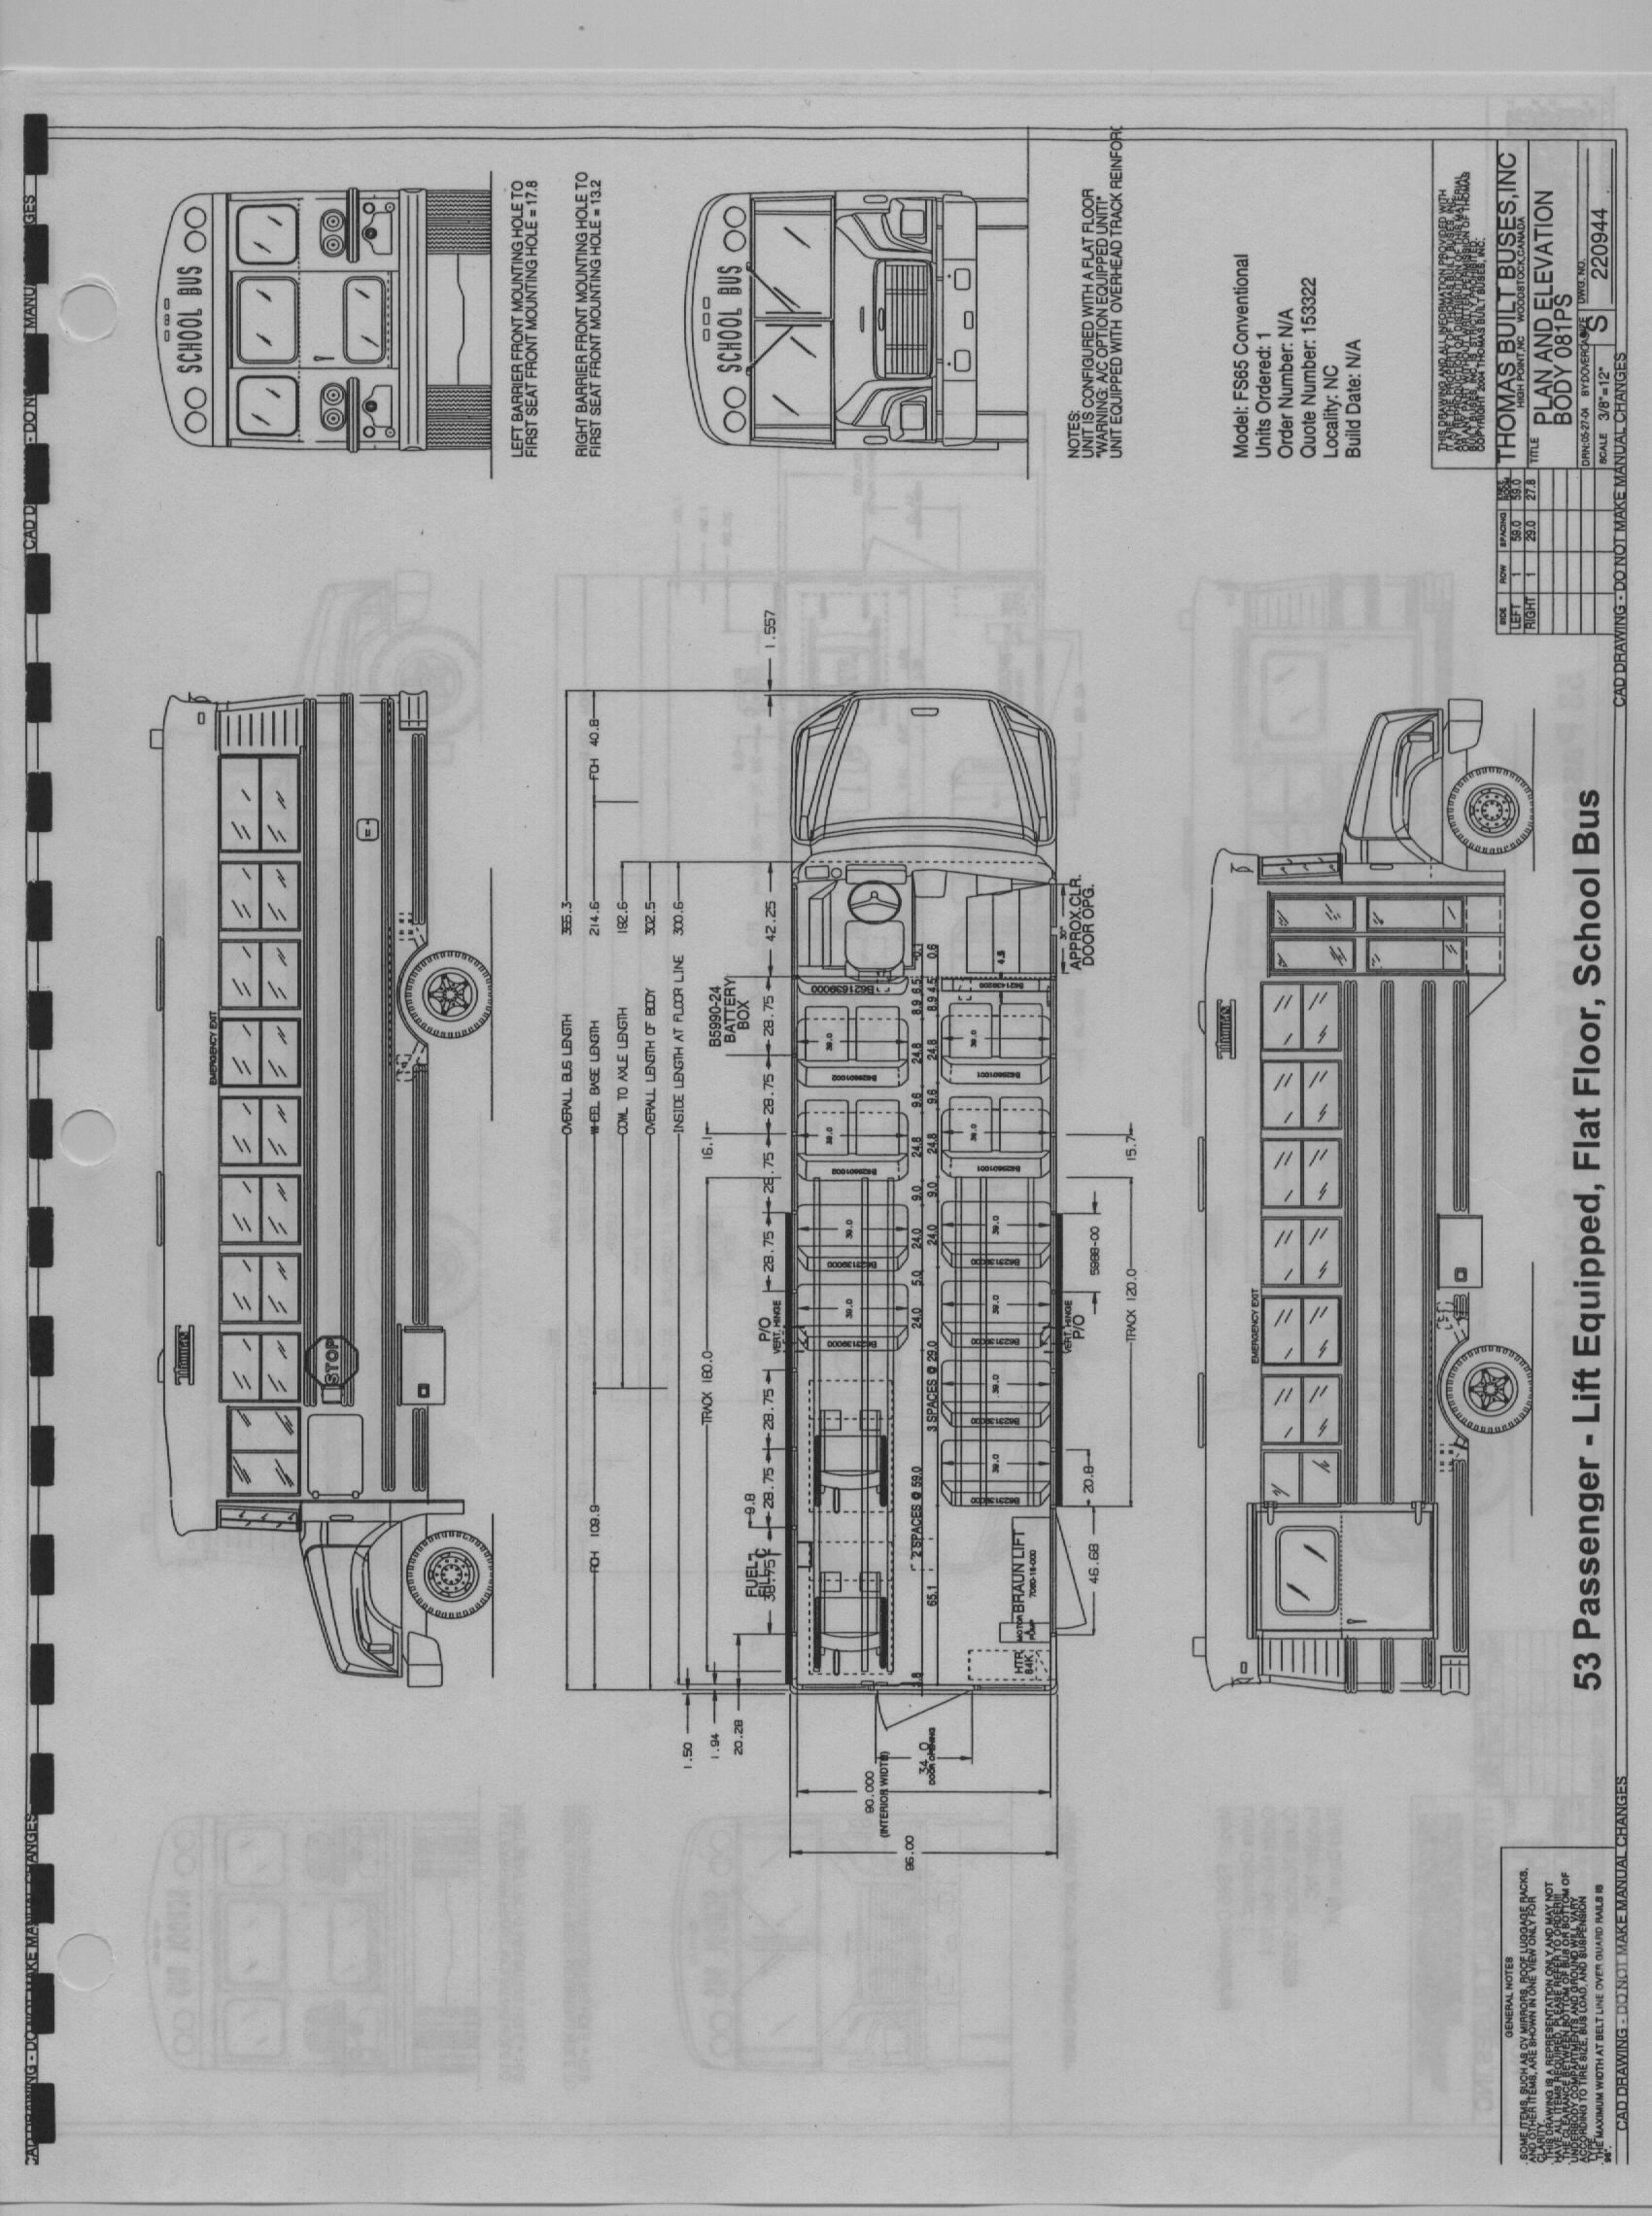 1993 bluebird bus wiring diagram pioneer fh x720bt schematics 30 images